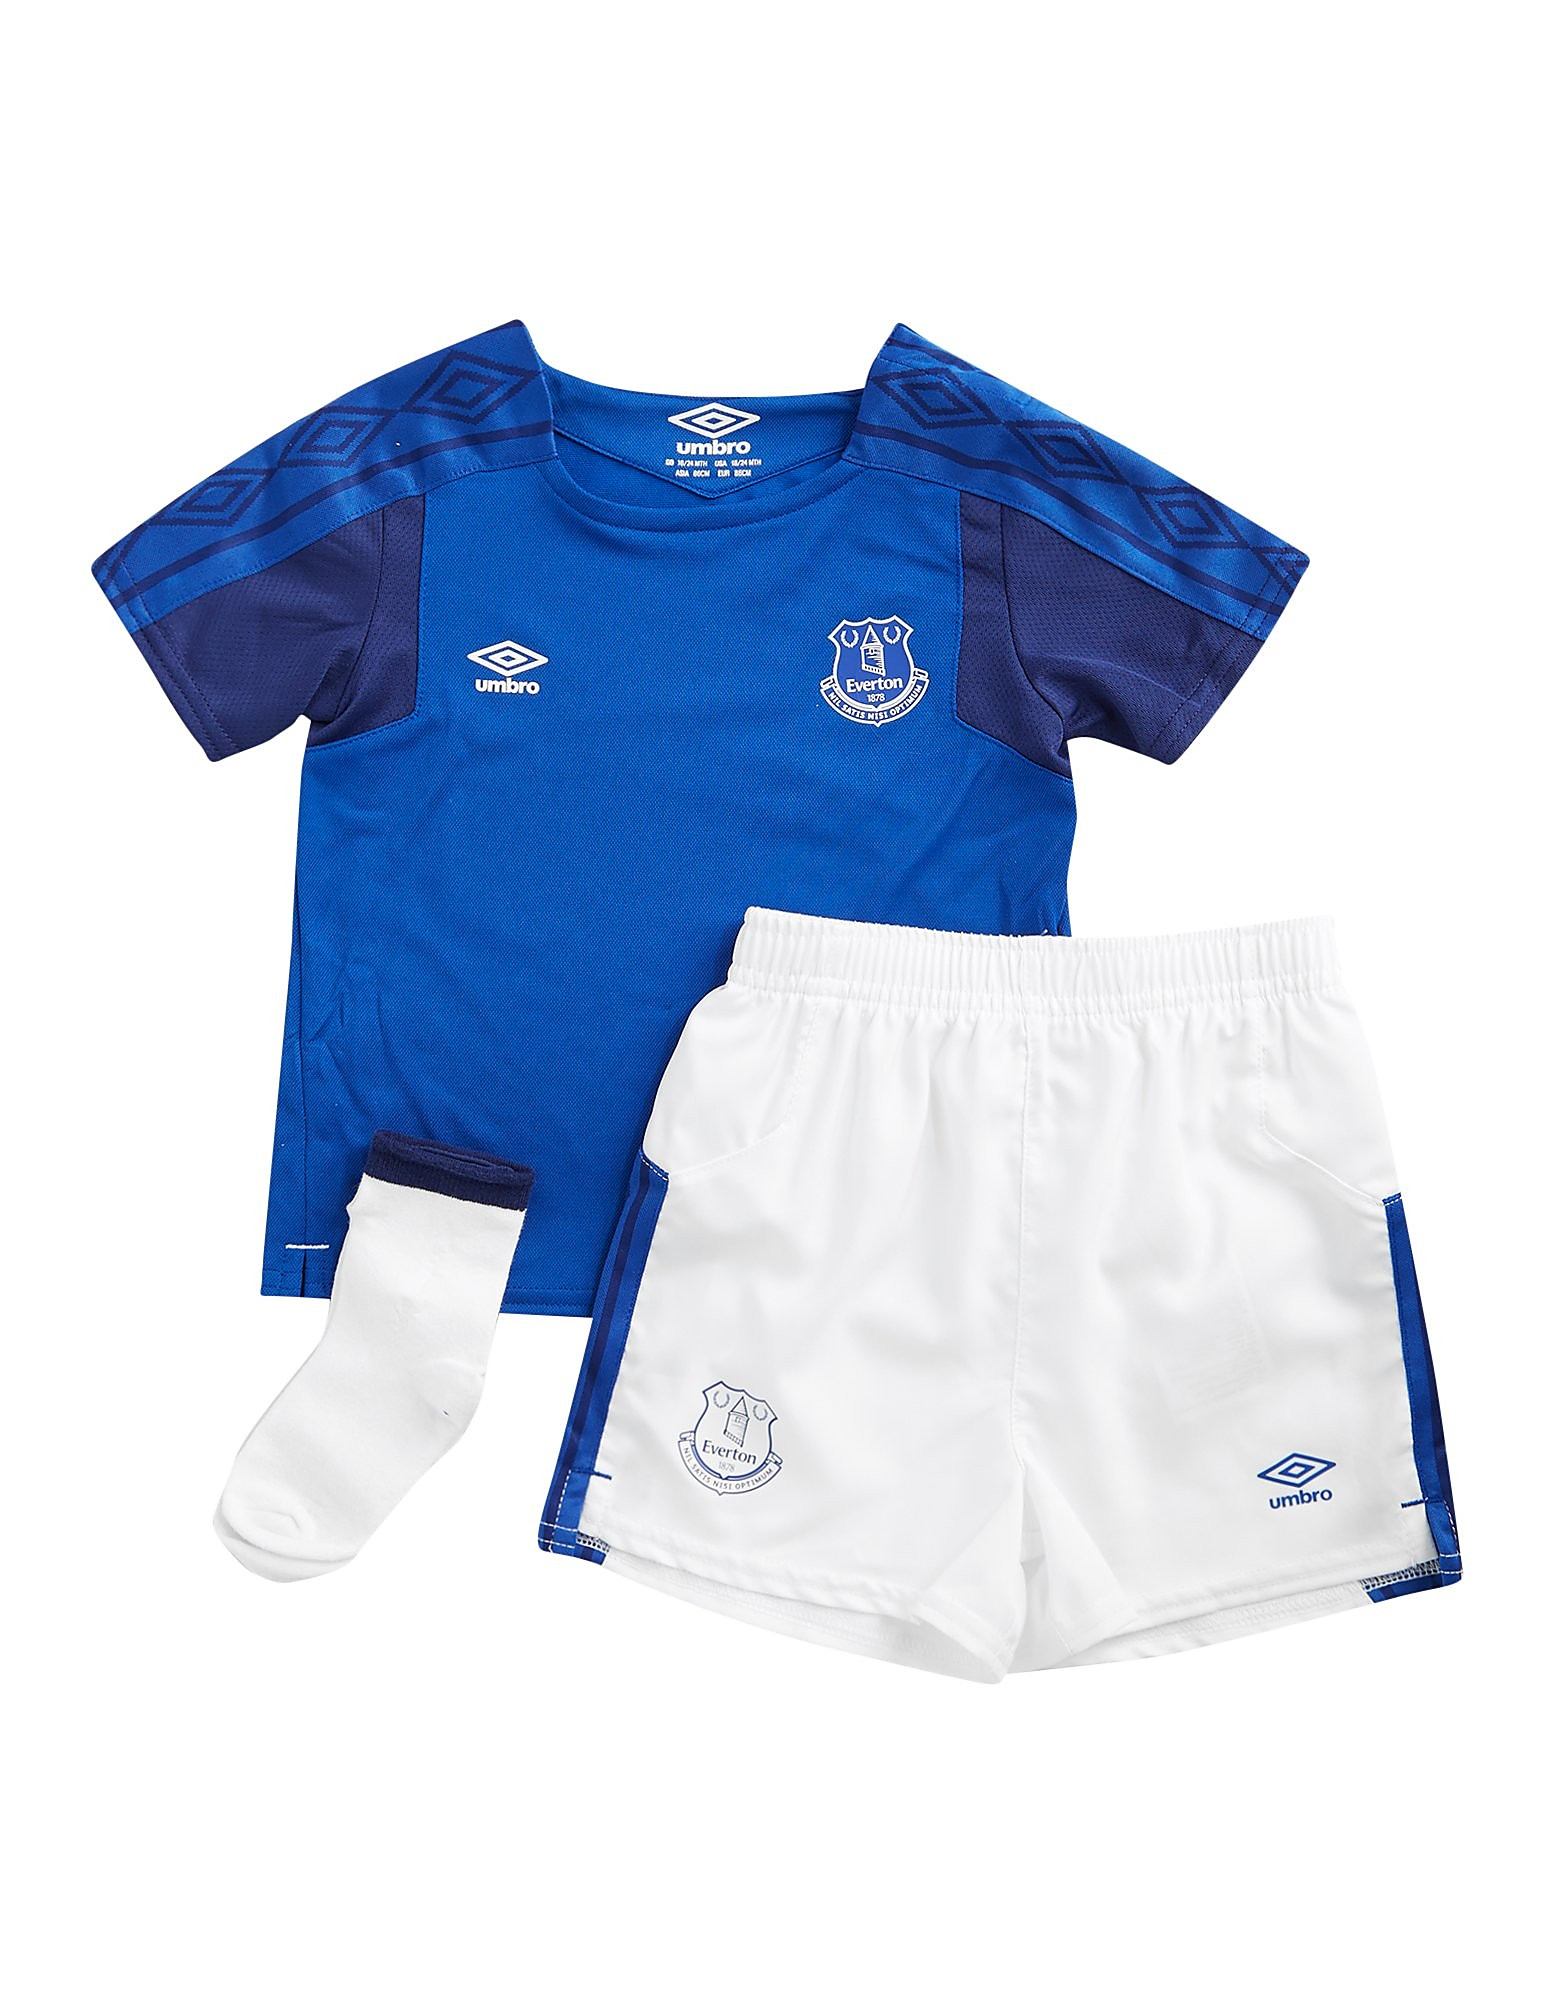 Umbro Everton FC 2017/18 Home Kit Infant